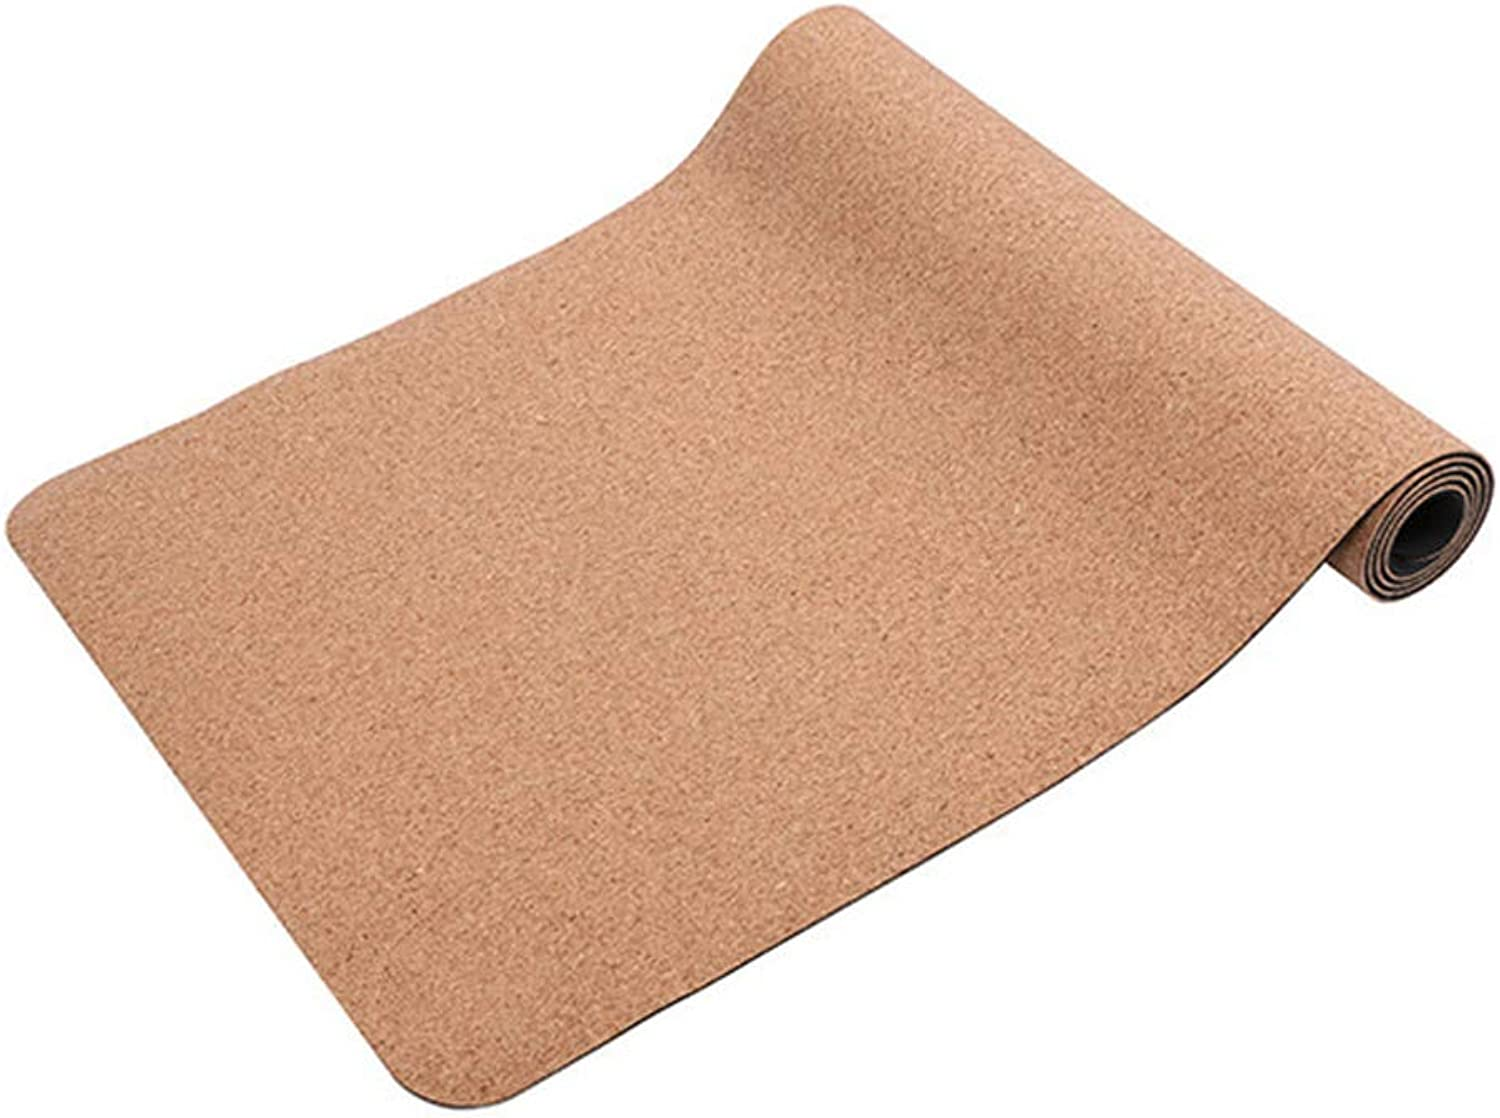 Cork TPE Yoga Mat Environmentally Friendly Safety Soft and Durable NonSlip Suitable for Beginners(183  61  0.4Cm)